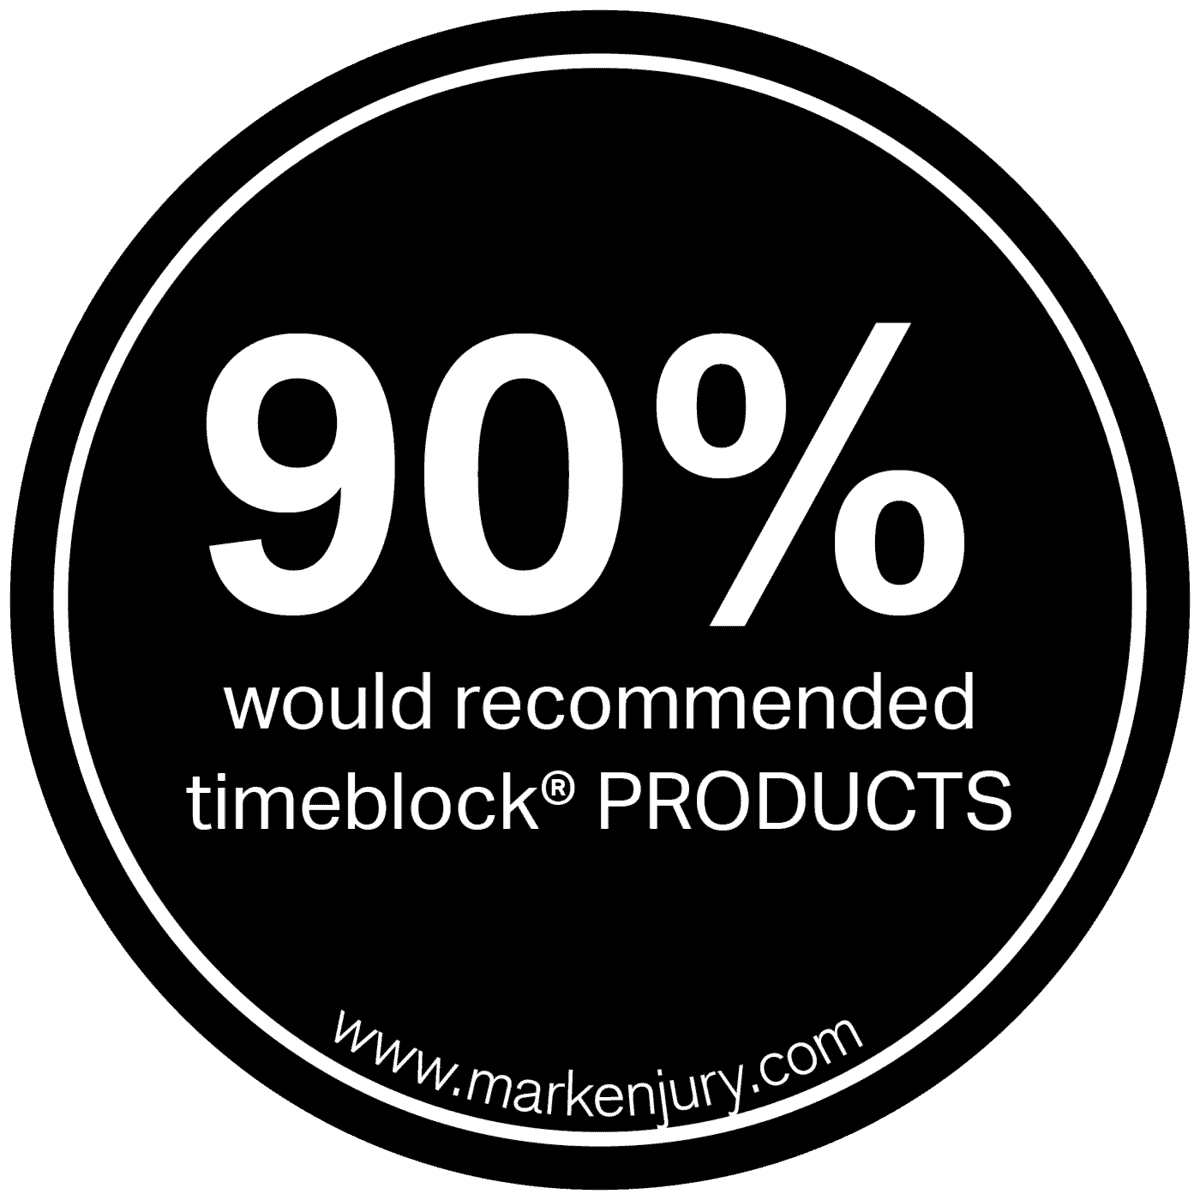 90% clients would recommend timeblock cosmetics products